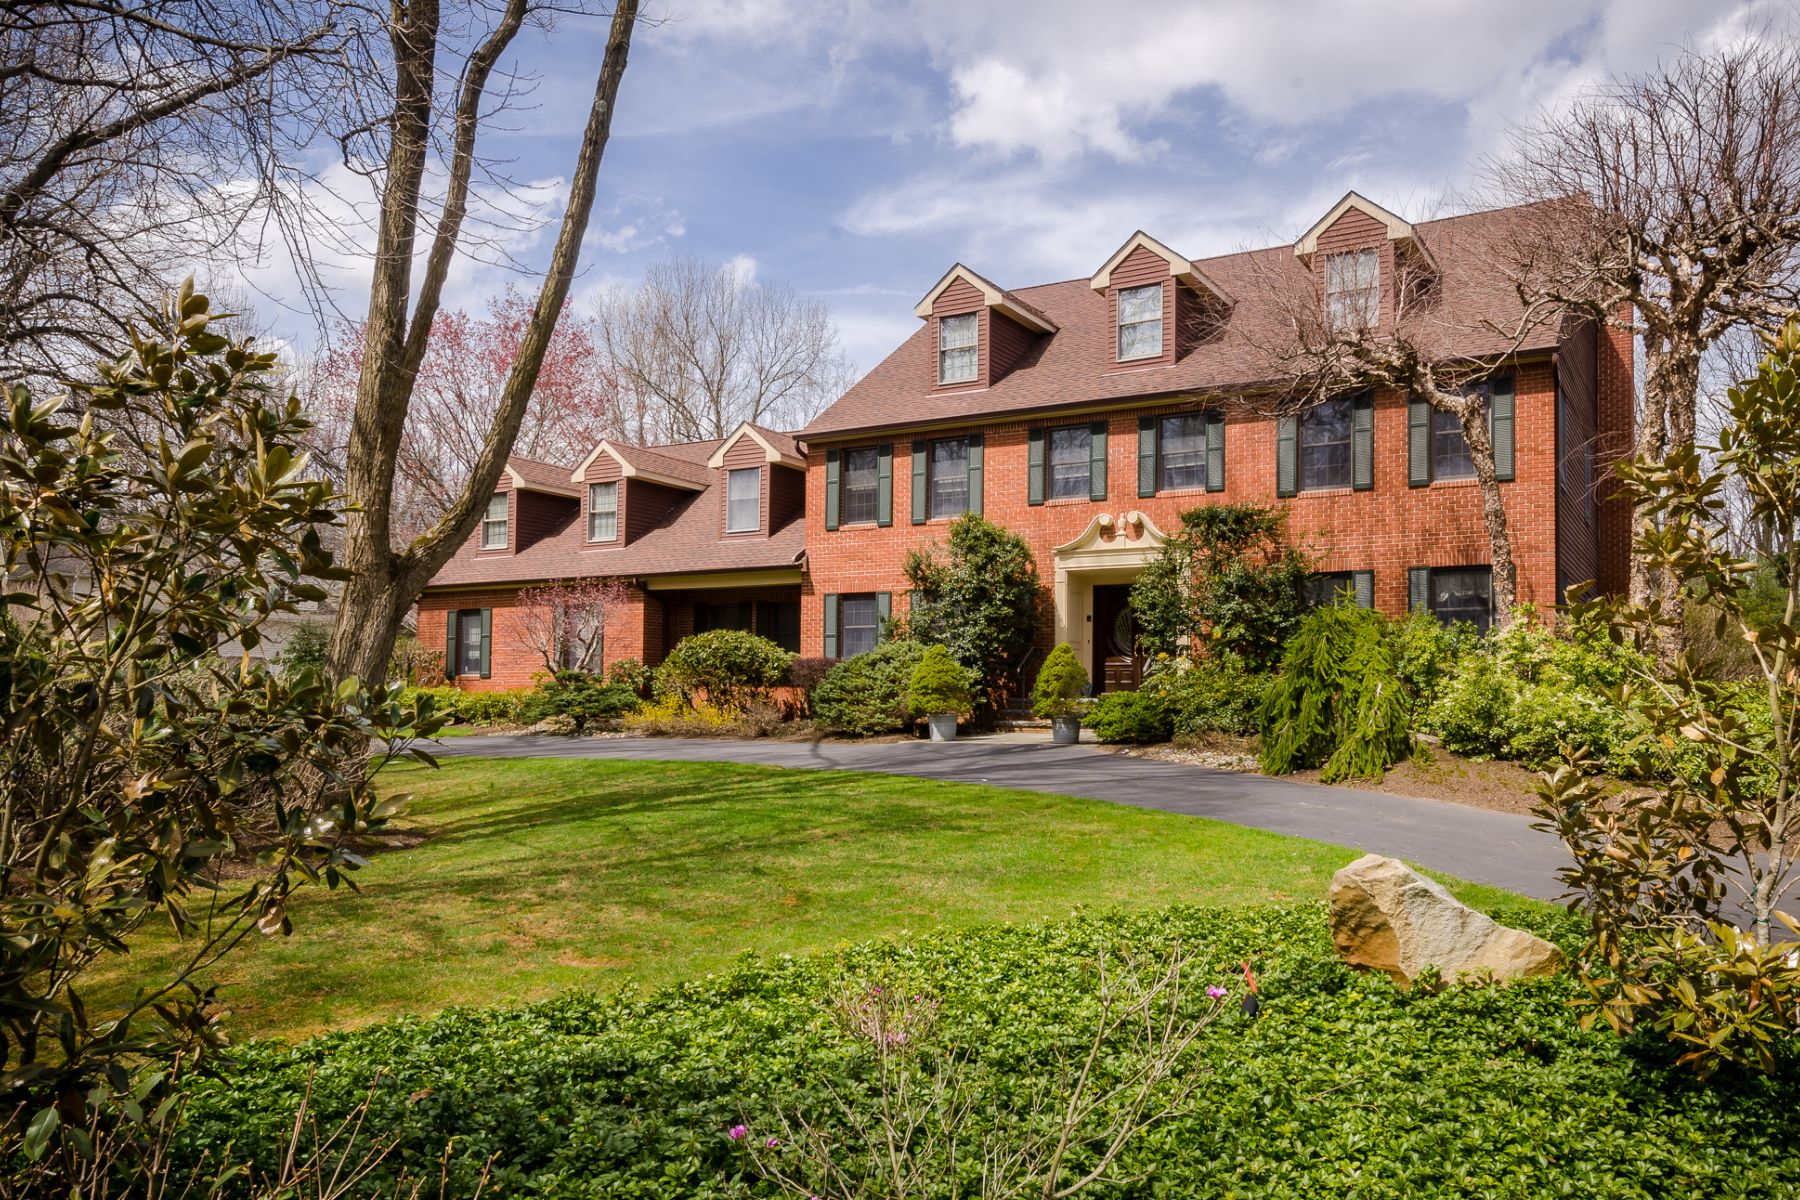 Single Family Homes for Sale at A Handsome Impression on a Princeton Cul-De-Sac 240 Arreton Road, Princeton, New Jersey 08540 United States